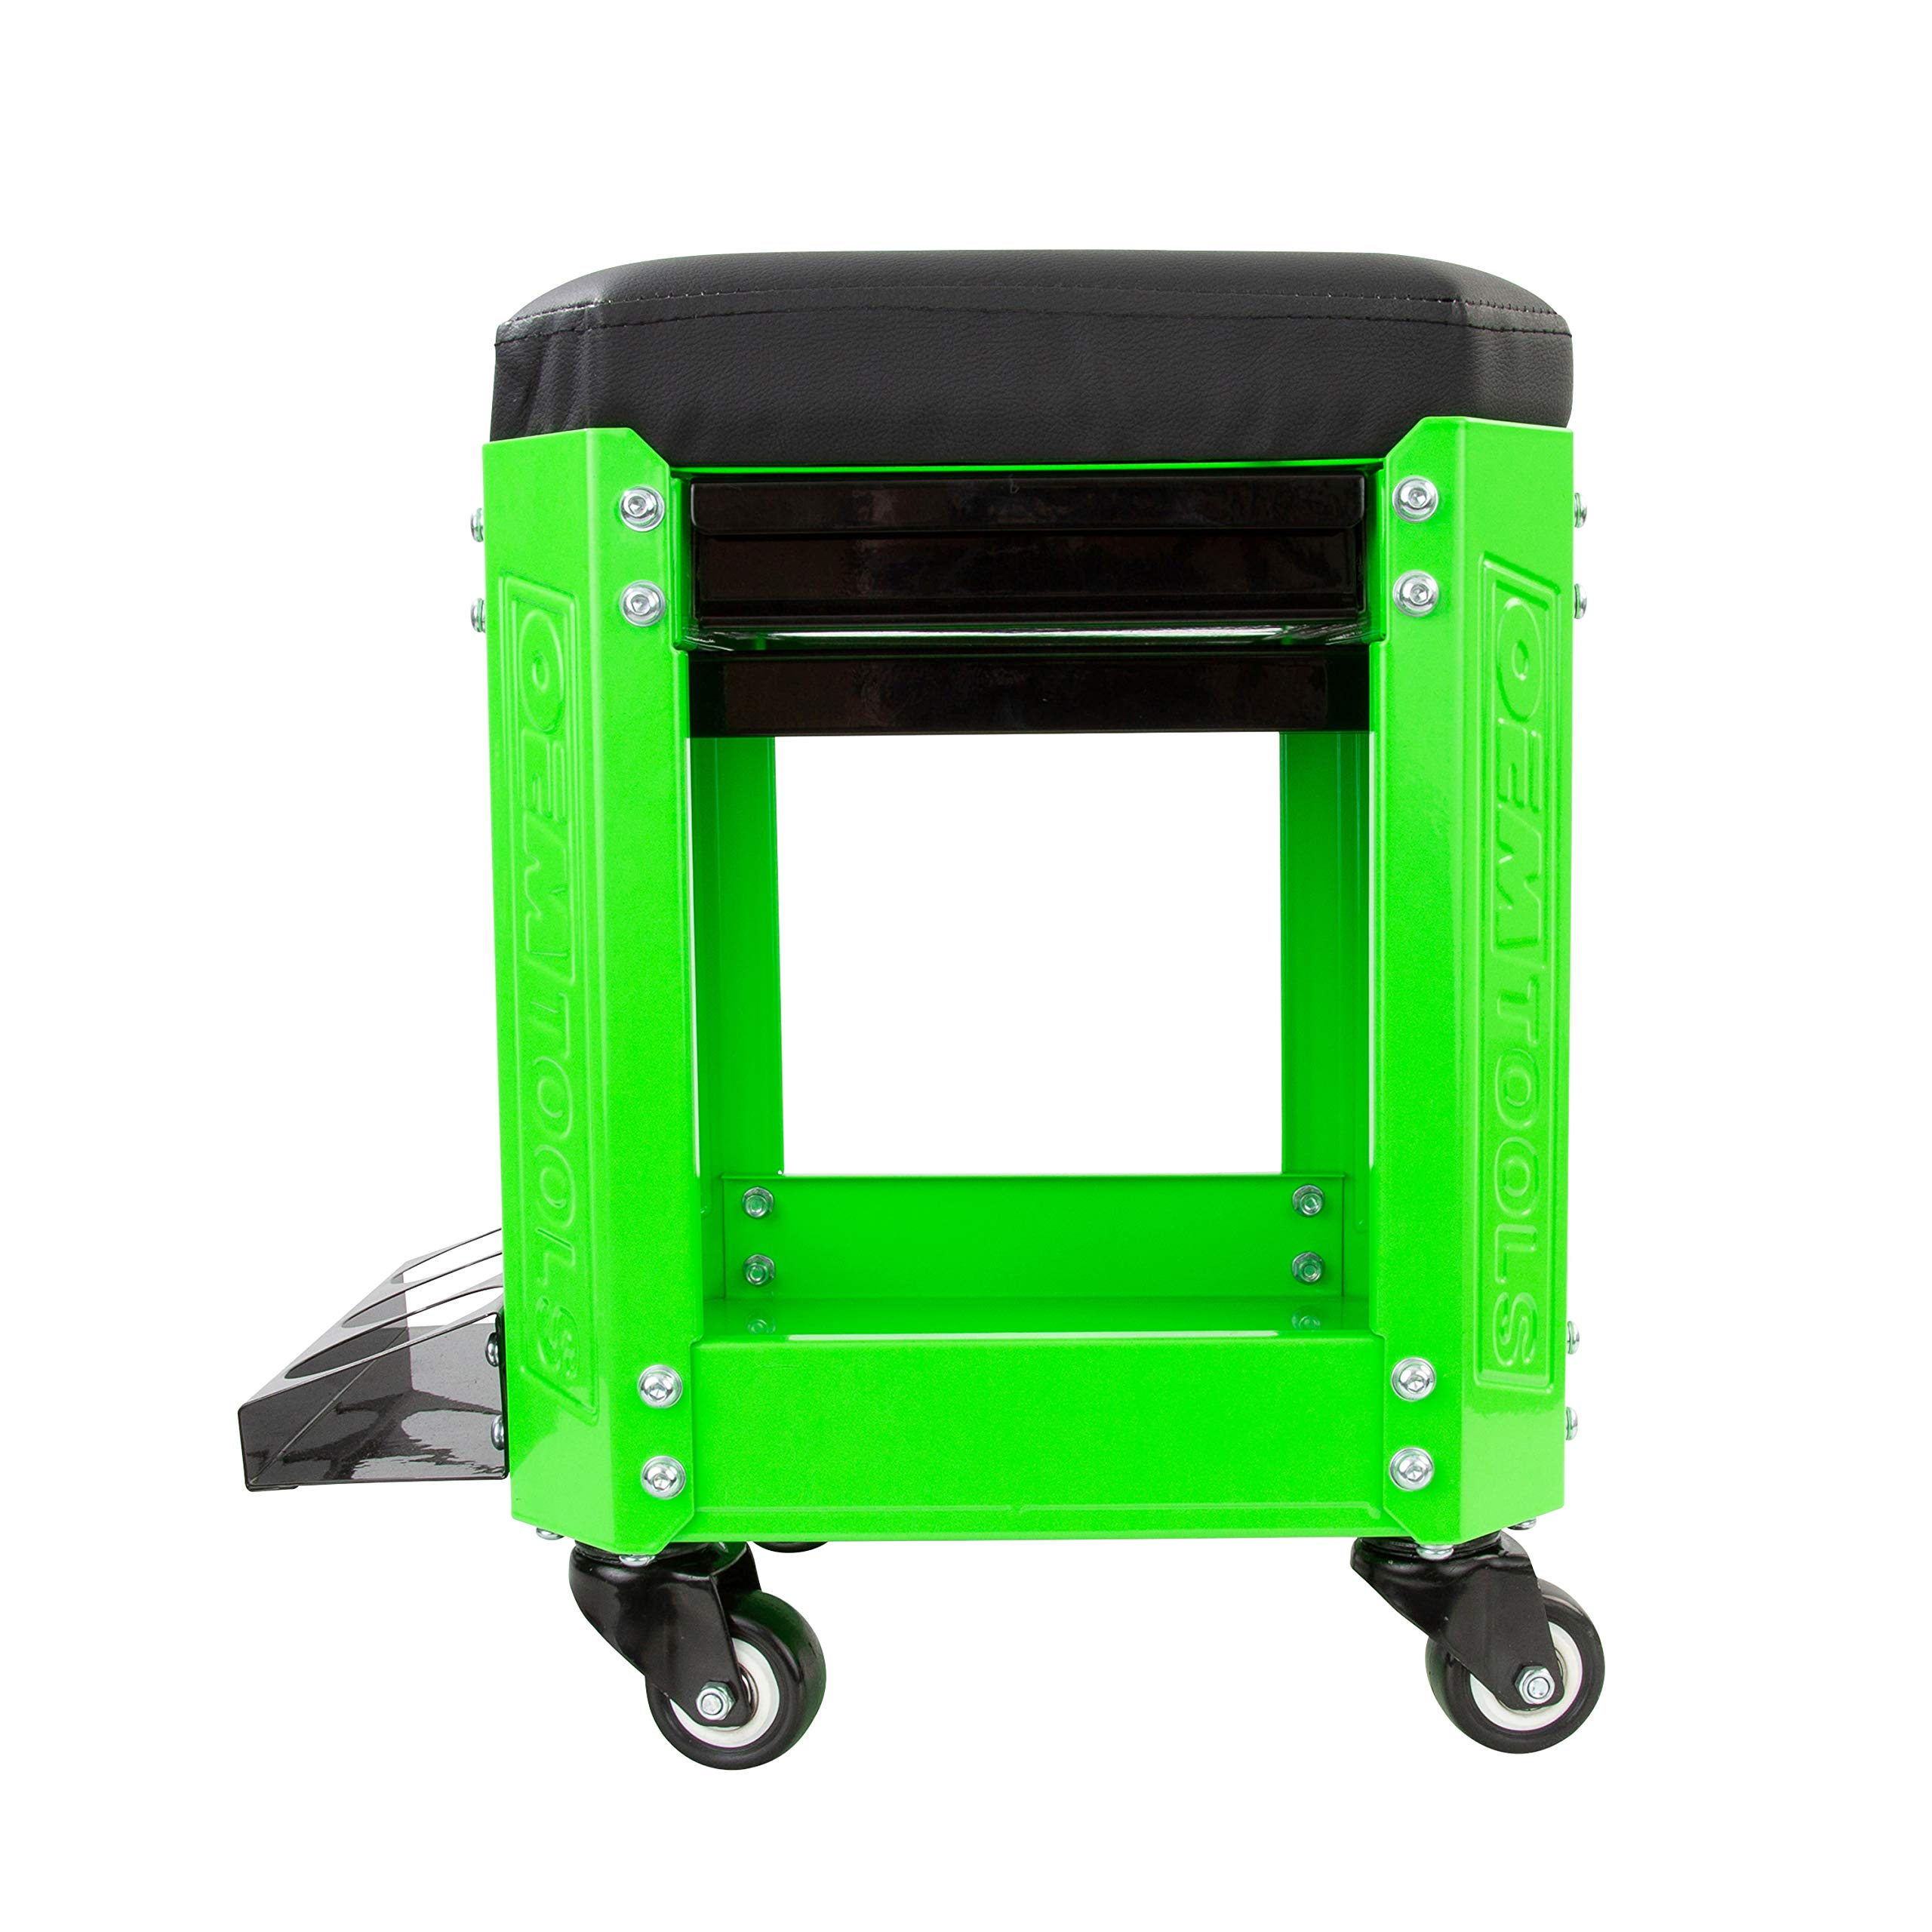 OEMTOOL 24993 Green Rolling Workshop Creeper Seat with 2 Tool Storage Drawers Under Seat Storage Can Holders by OEMTOOLS (Image #3)